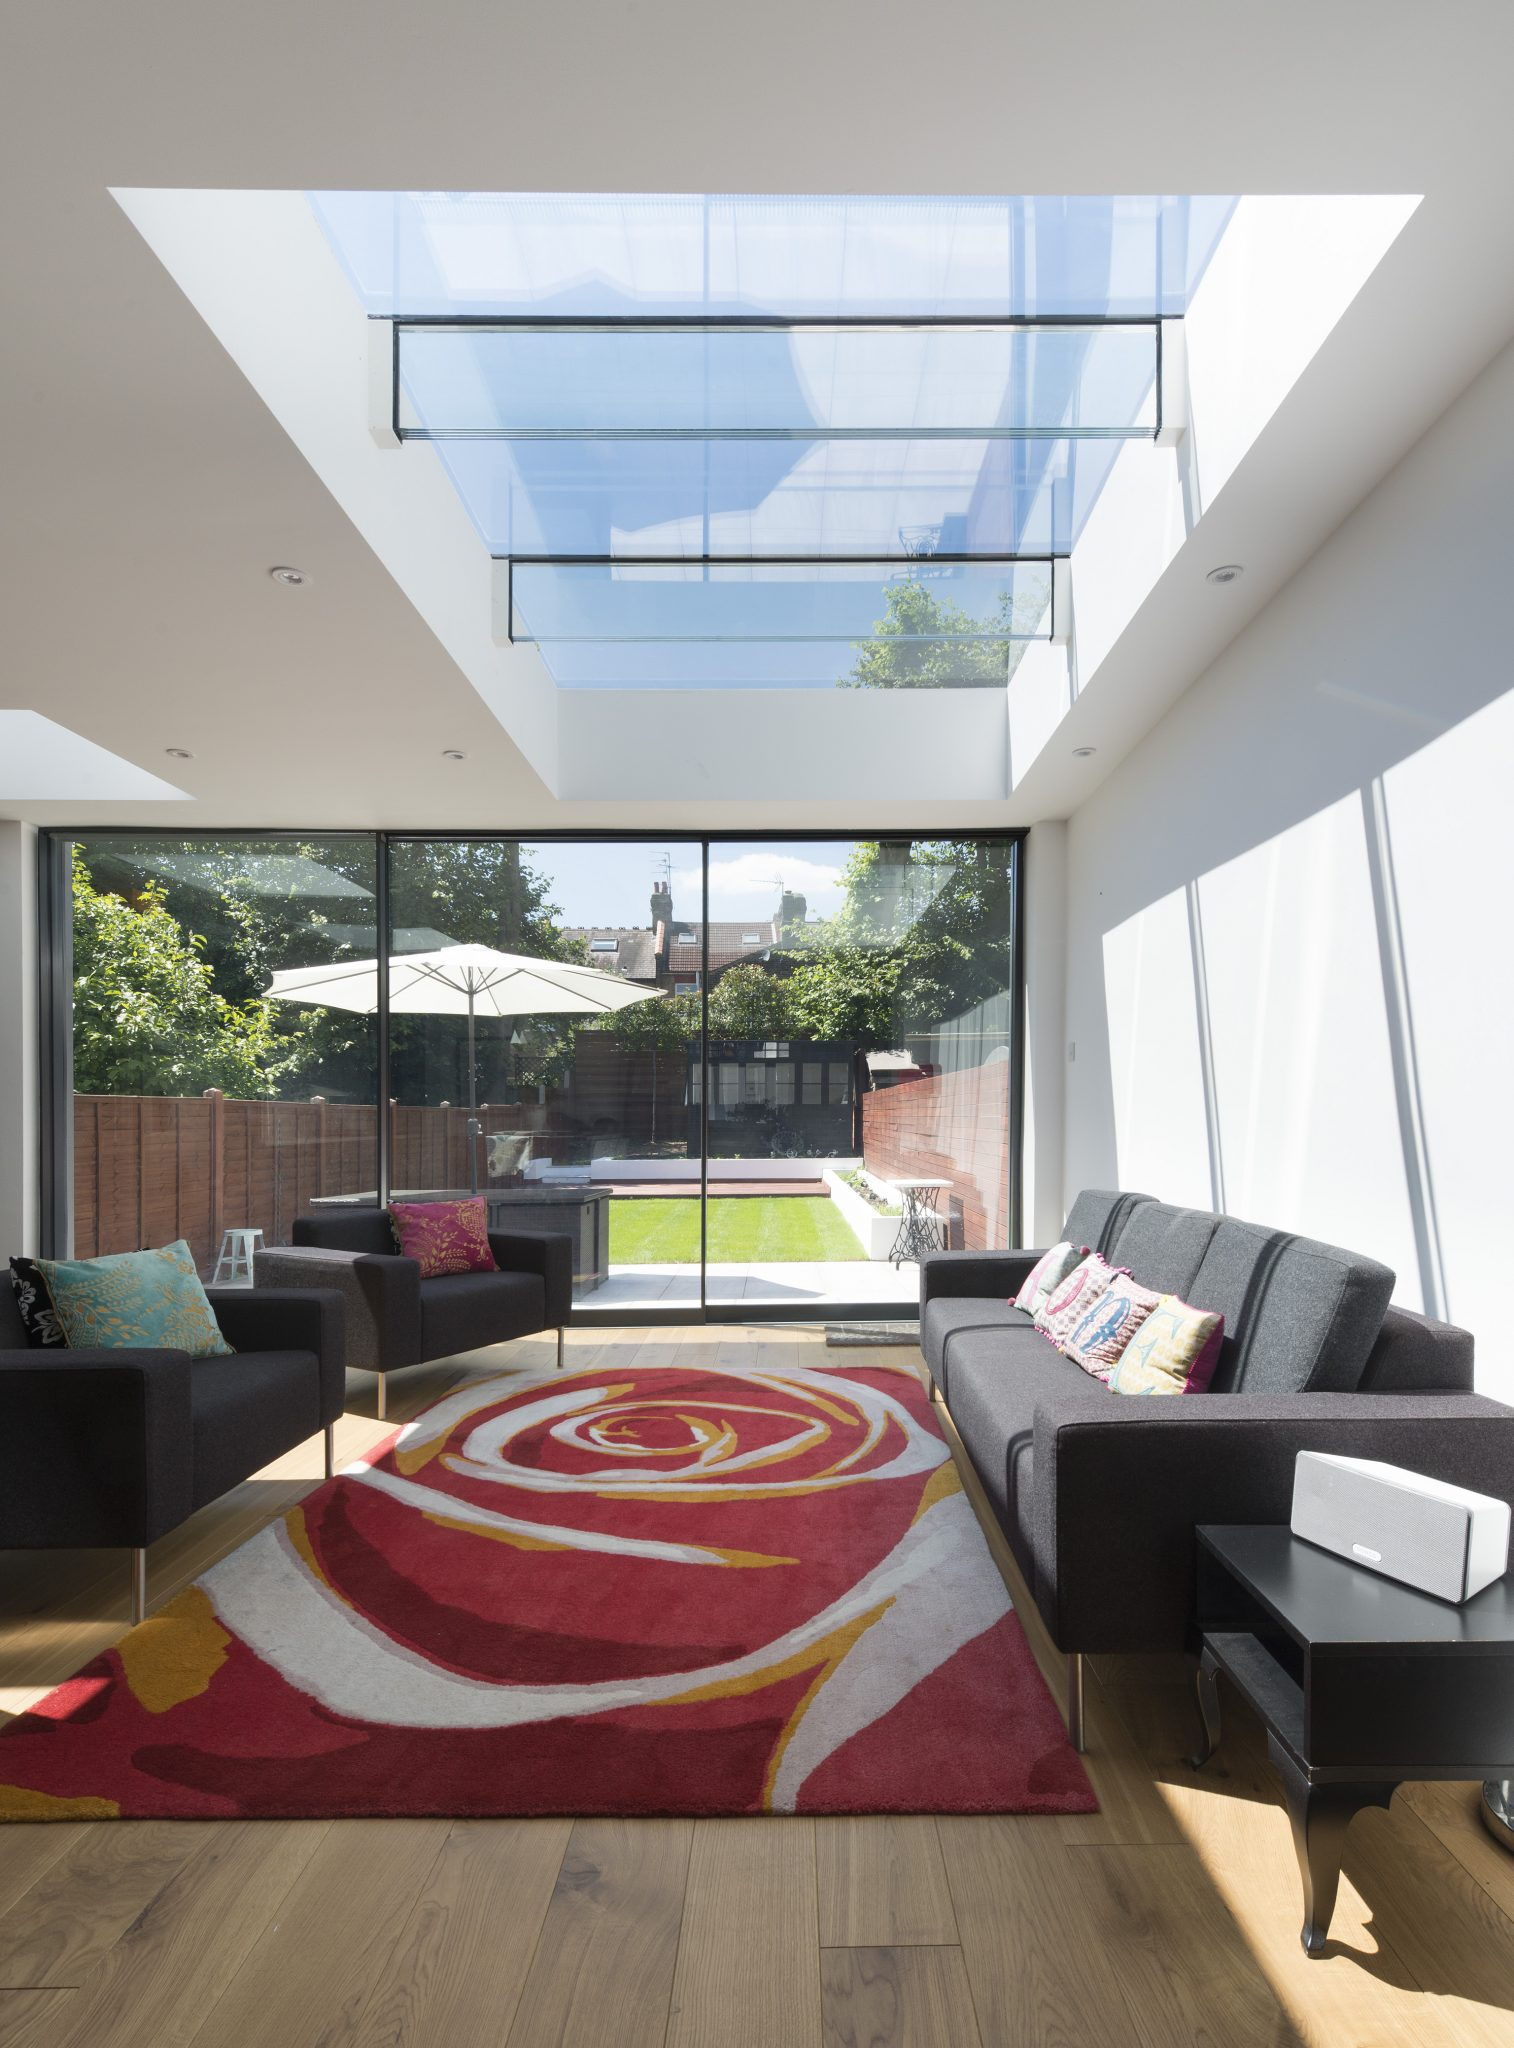 Fixed Multi-panel Skylights with Glass Beams and Fixed Skylights